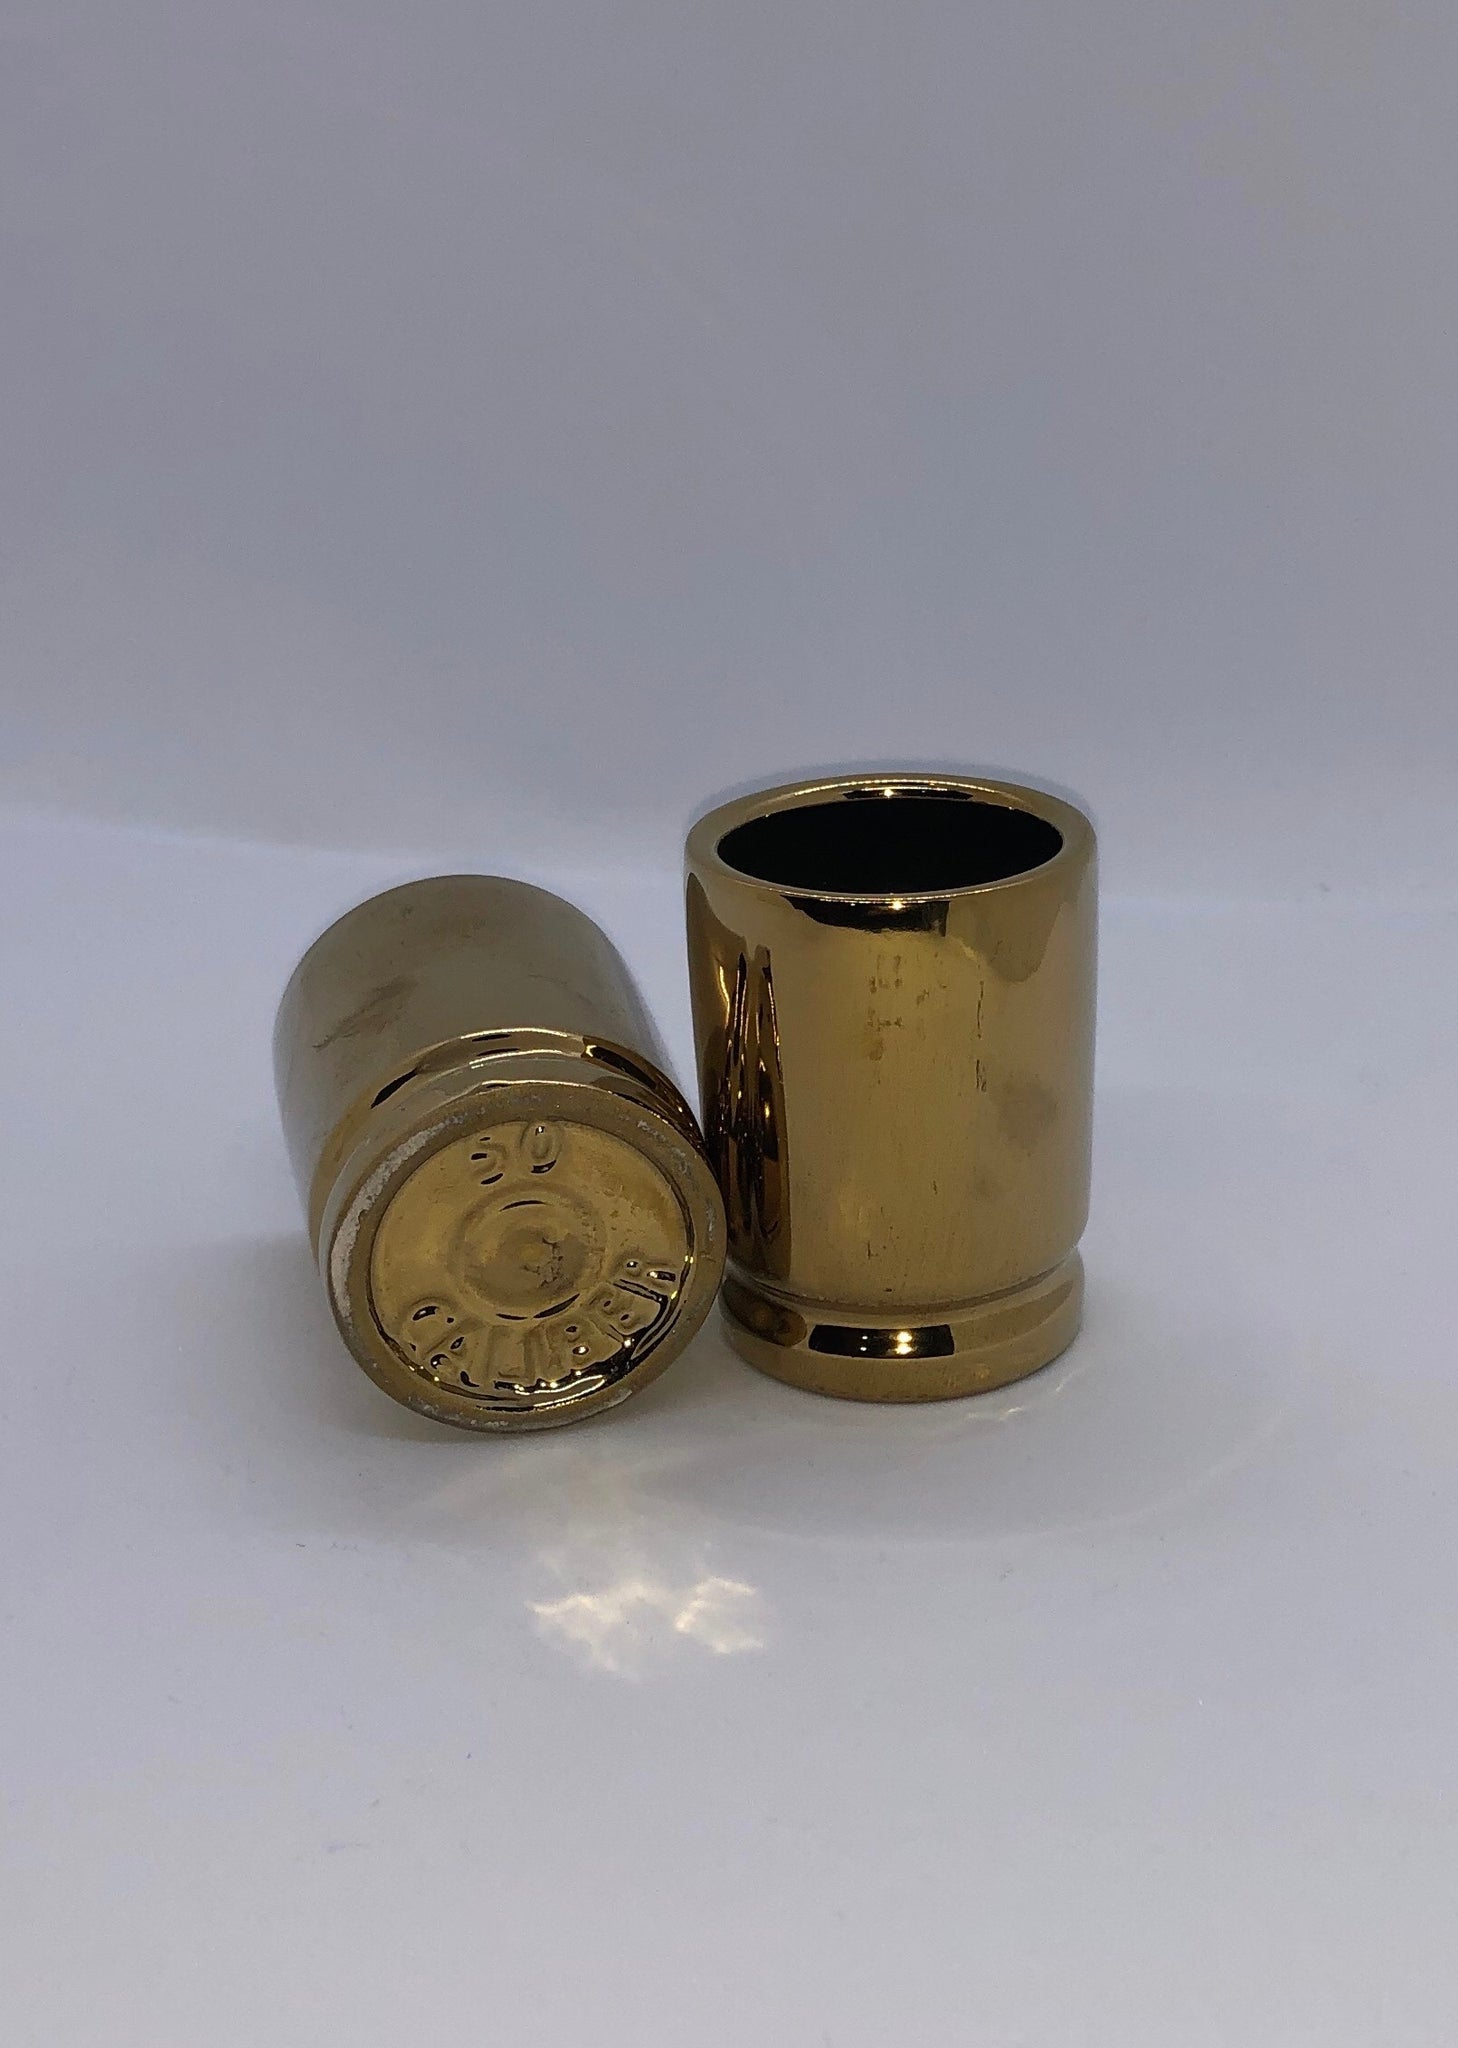 50 Caliber Bullet Shot Glasses, Set of 2